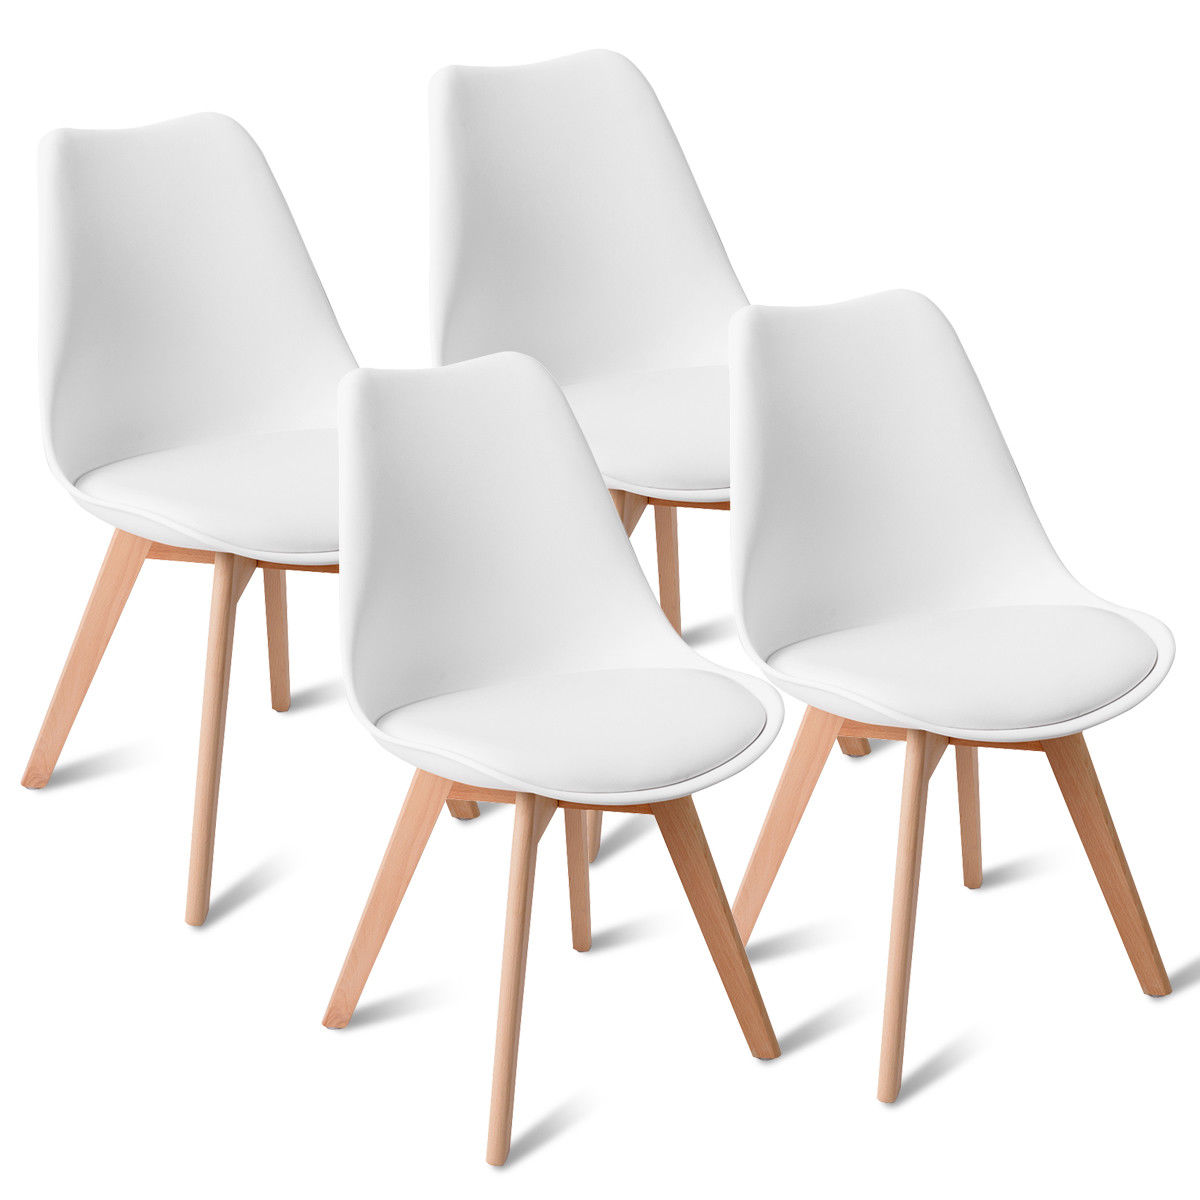 Gymax Set Of 4 Mid Century Modern Style Dining Side Chair Upholstered Seat Wood Legs Walmart Com Walmart Com